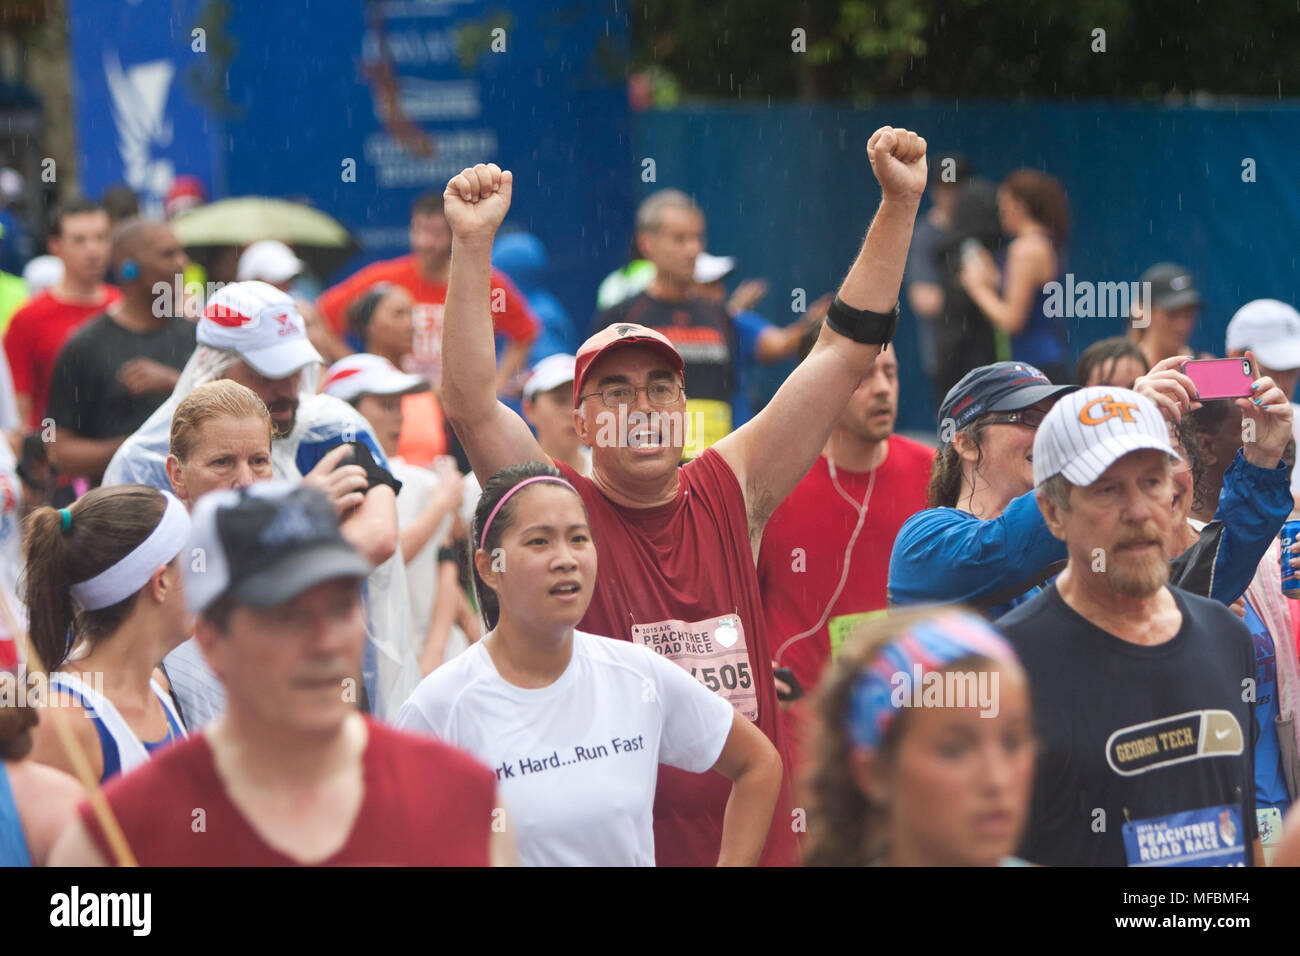 A man raises his arms triumphantly among a crowd of runners crossing the finish line at the Peachtree Road Race on July 4, 2015 in Atlanta, GA. - Stock Image